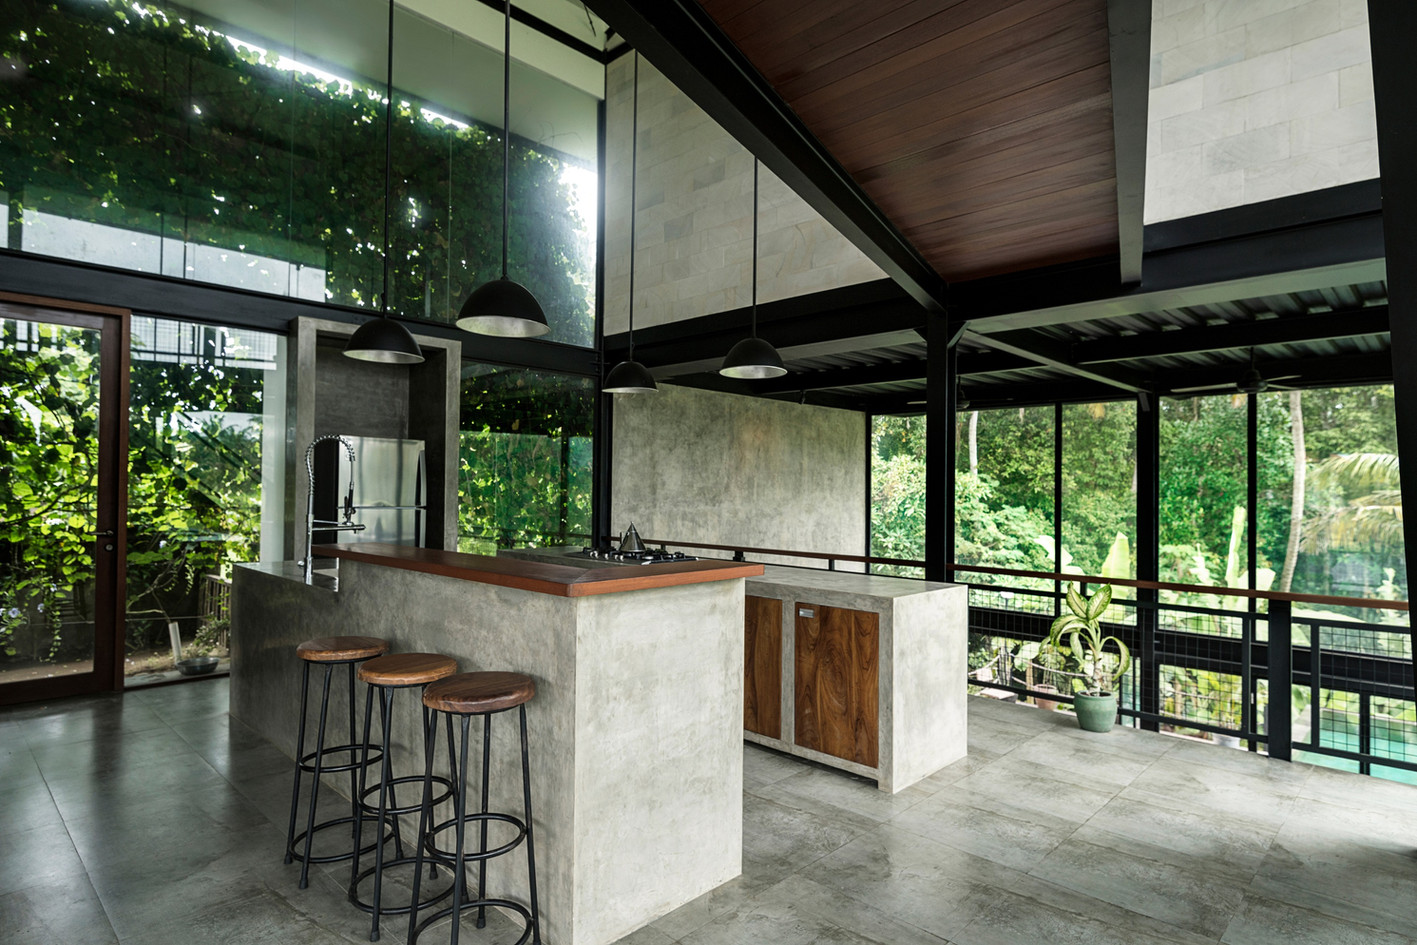 Gorgeous kitchen with stone counters and tile flooring